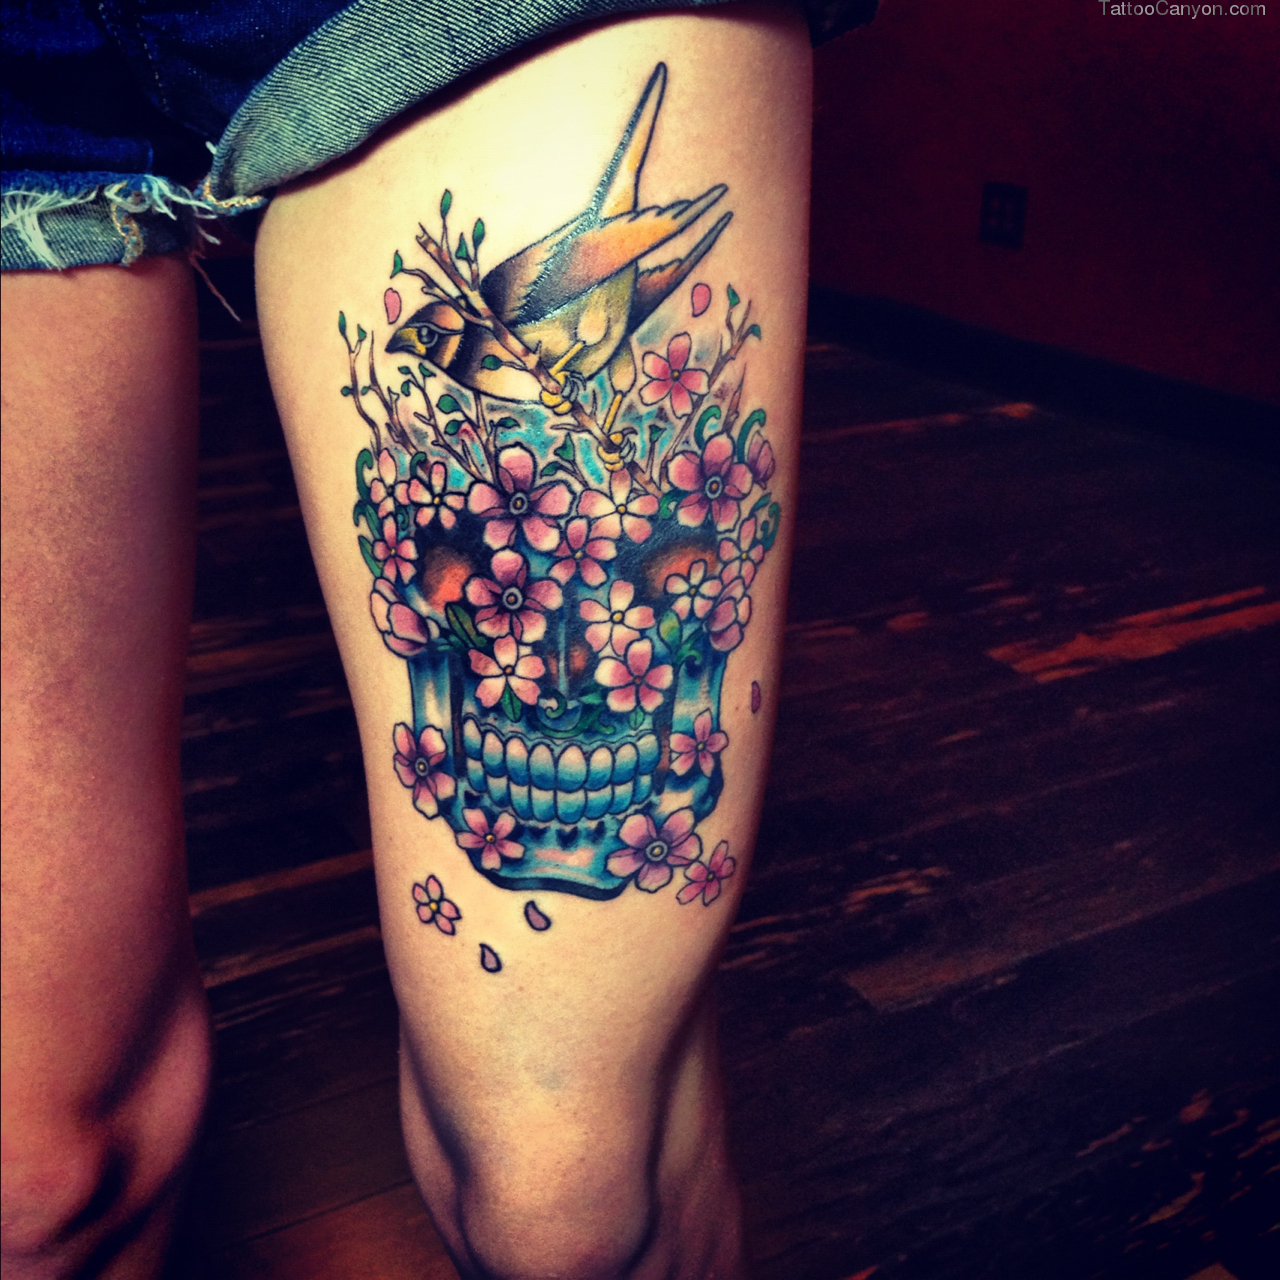 Shine Flower skull thigh tattoo this remarkable